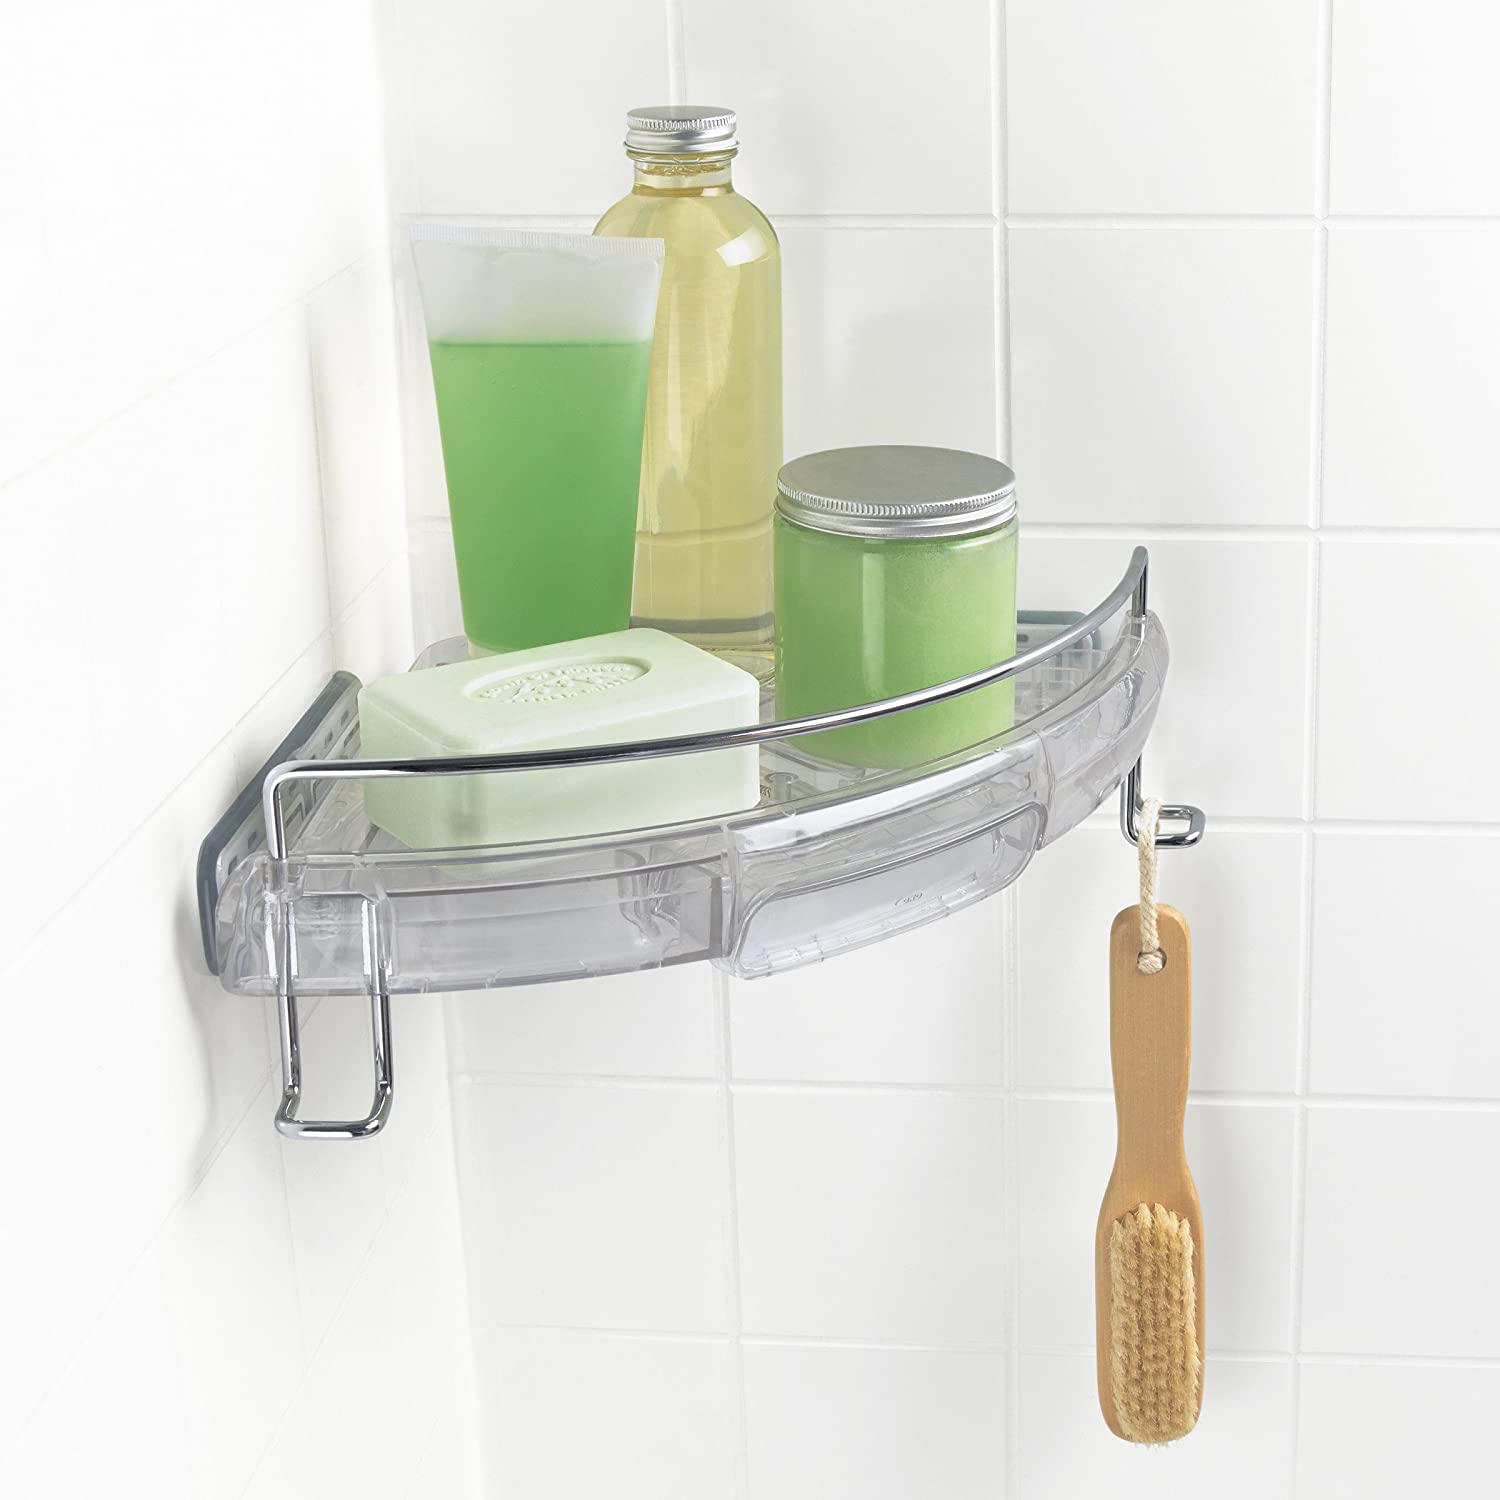 Amazon.com: OXO Good Grips Press Sure Corner Shower Caddy: Home ...